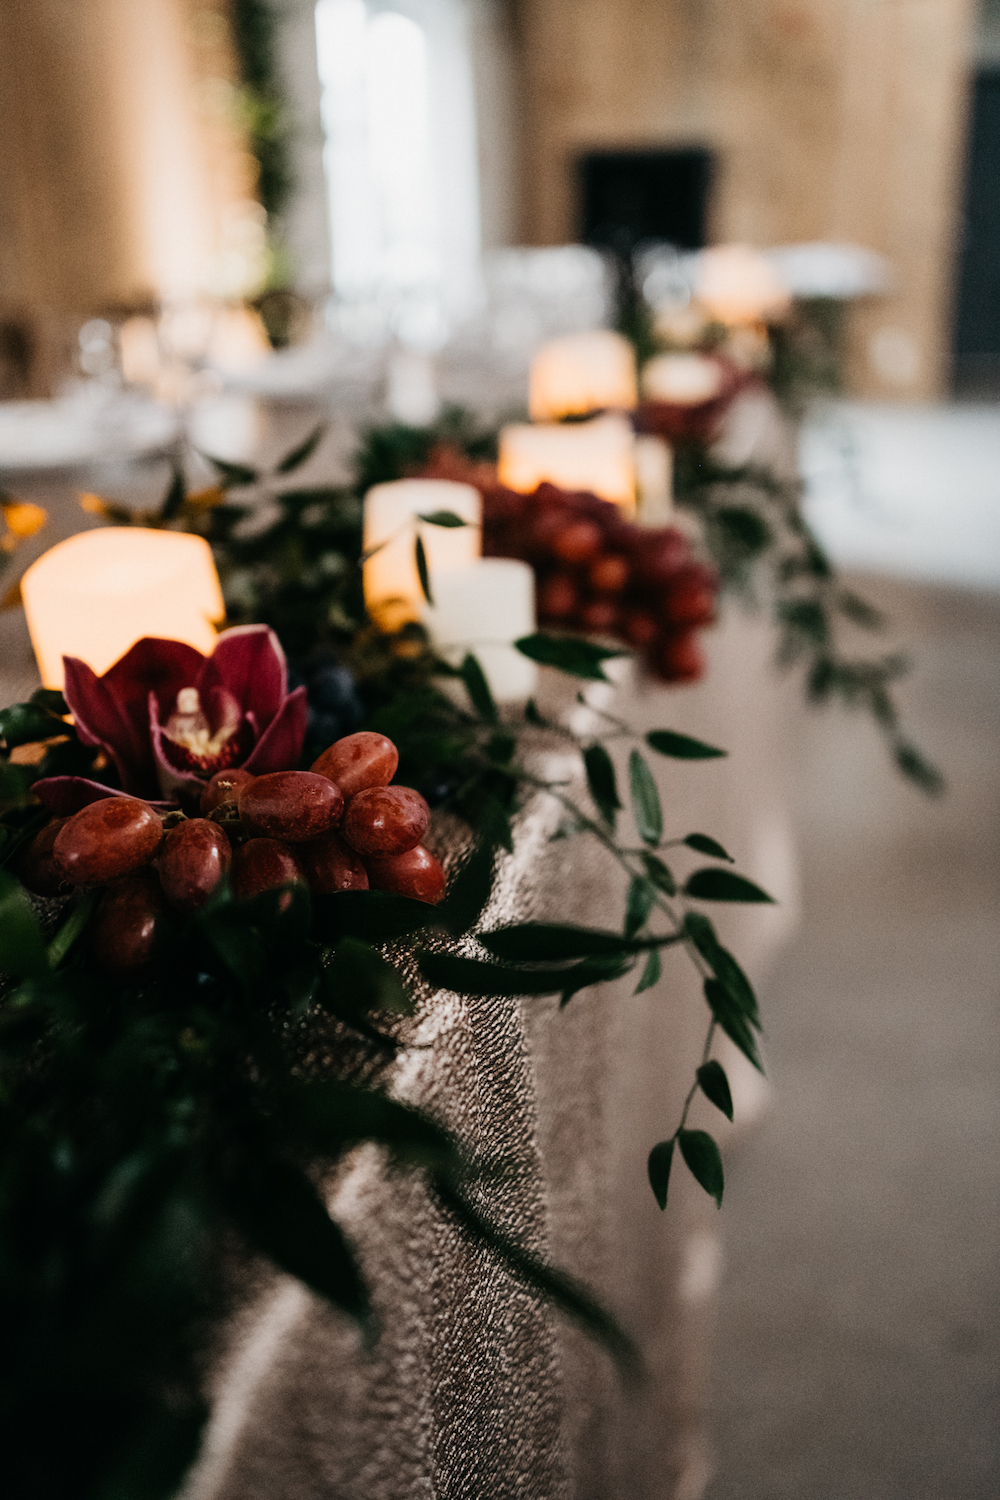 Grape Wedding Decor Ideas - Fall Wedding Flowers